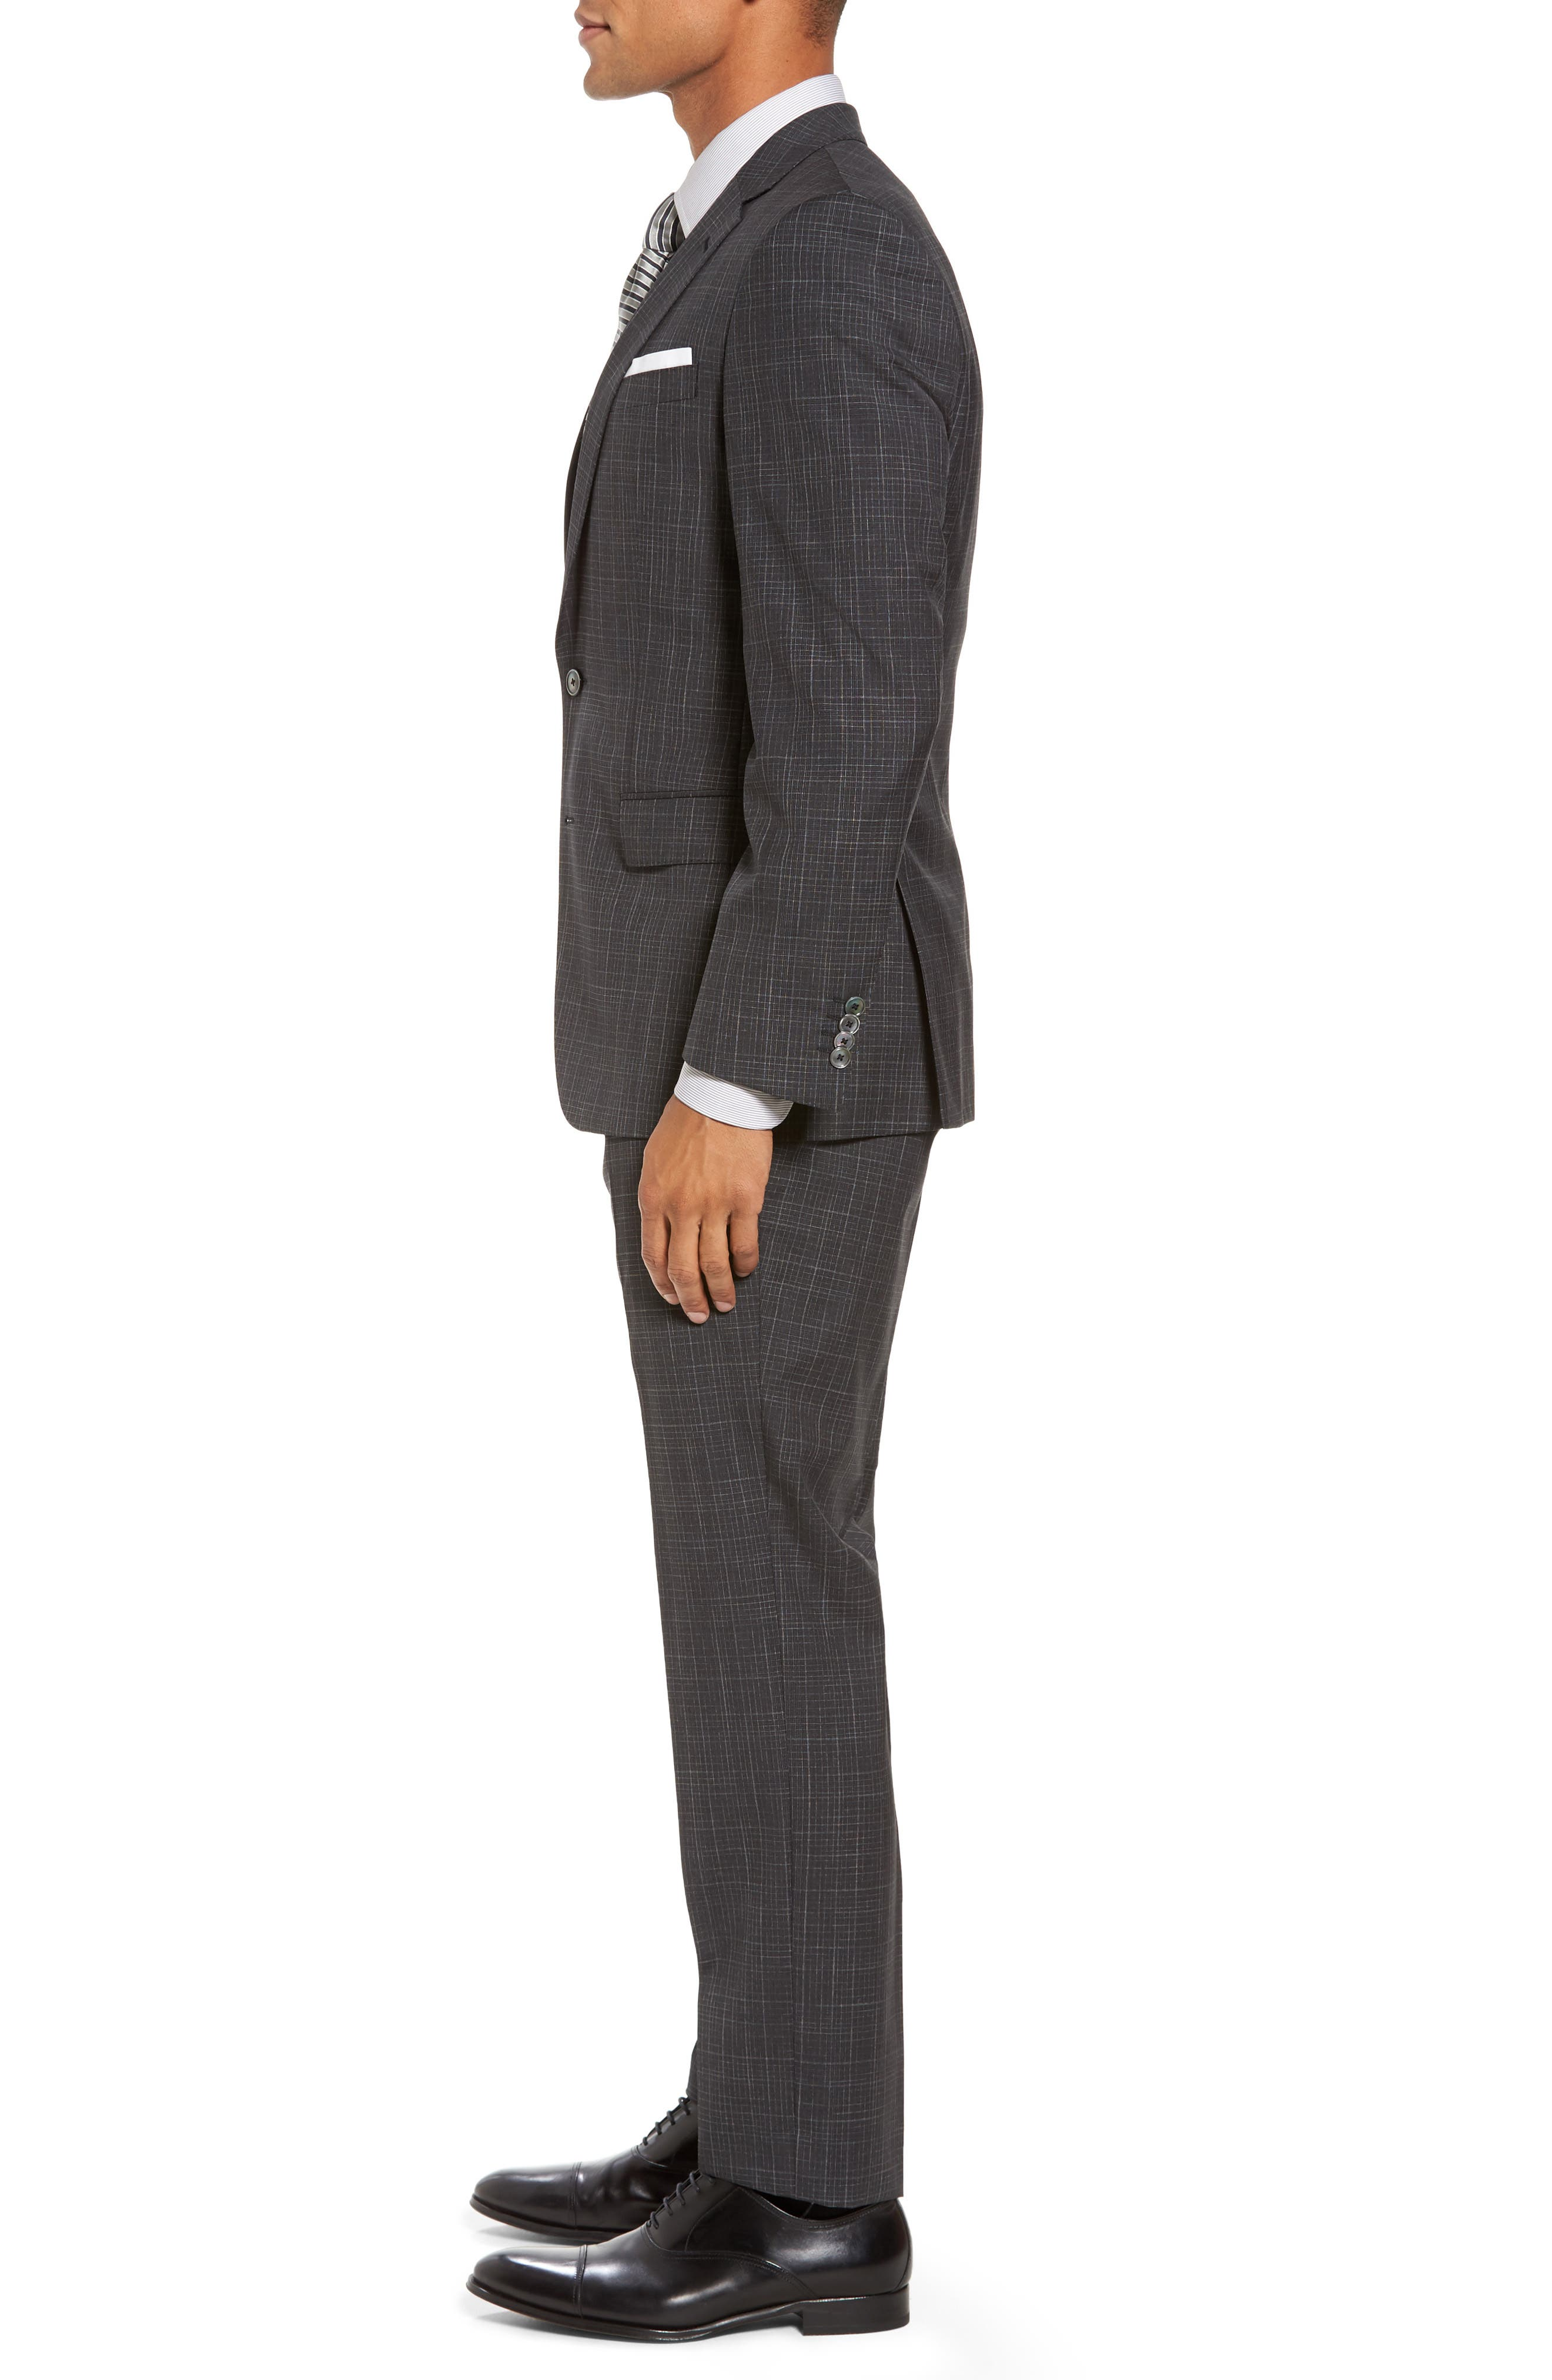 Hutson/Gander Trim Fit Plaid Wool Suit,                             Alternate thumbnail 3, color,                             Open Grey